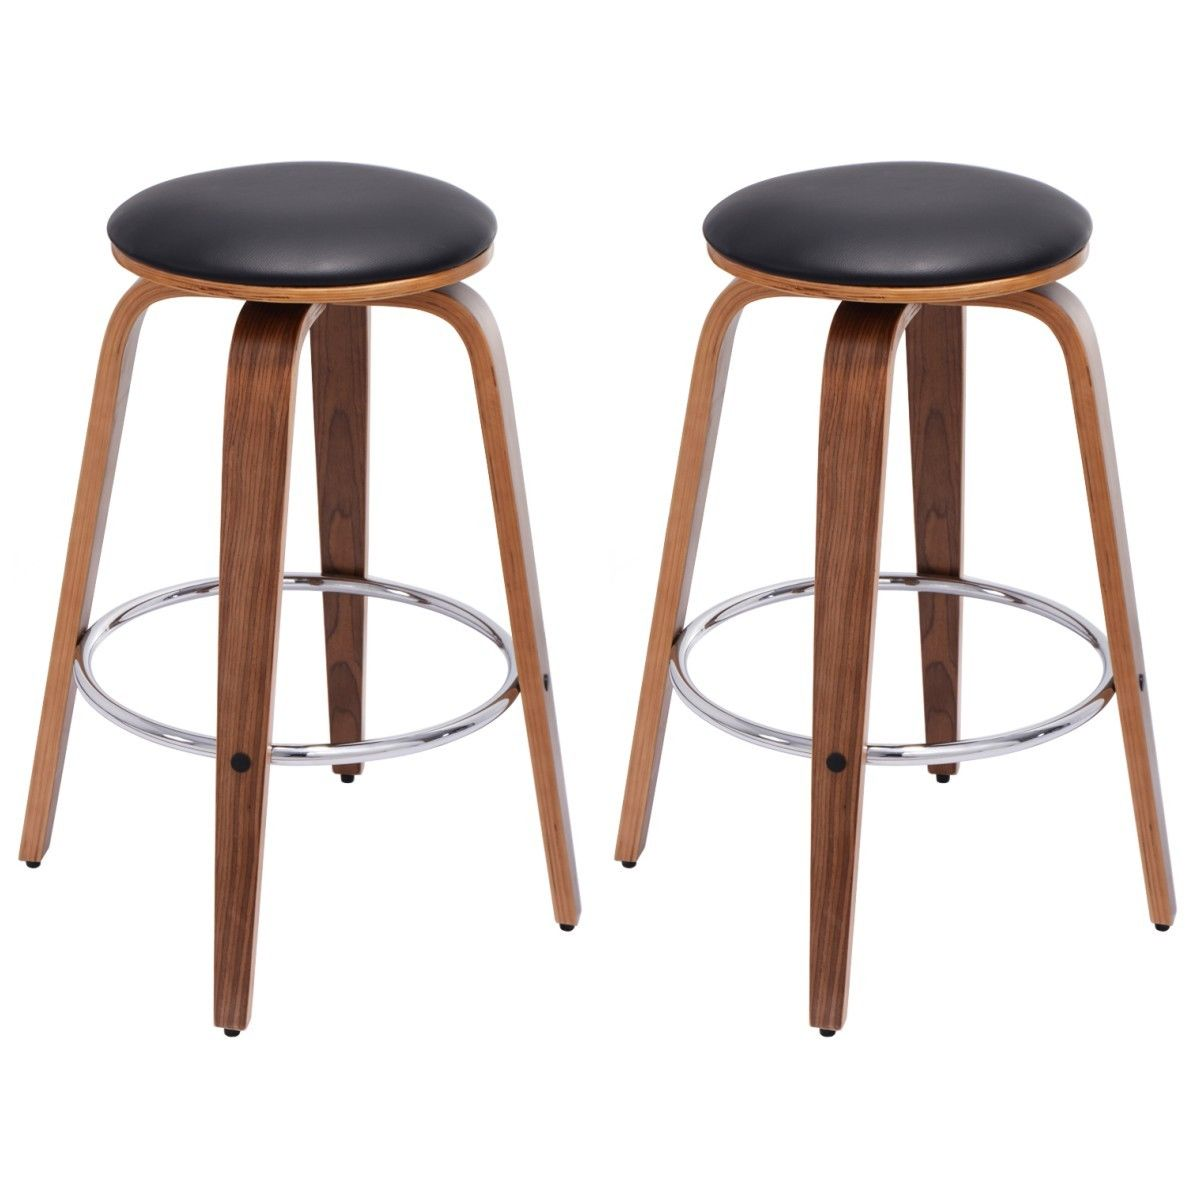 Costway Set of 2 Swivel Bentwood Bar Stool PU Leather Modern Bar Stools Bistro Pub Chair by Costway